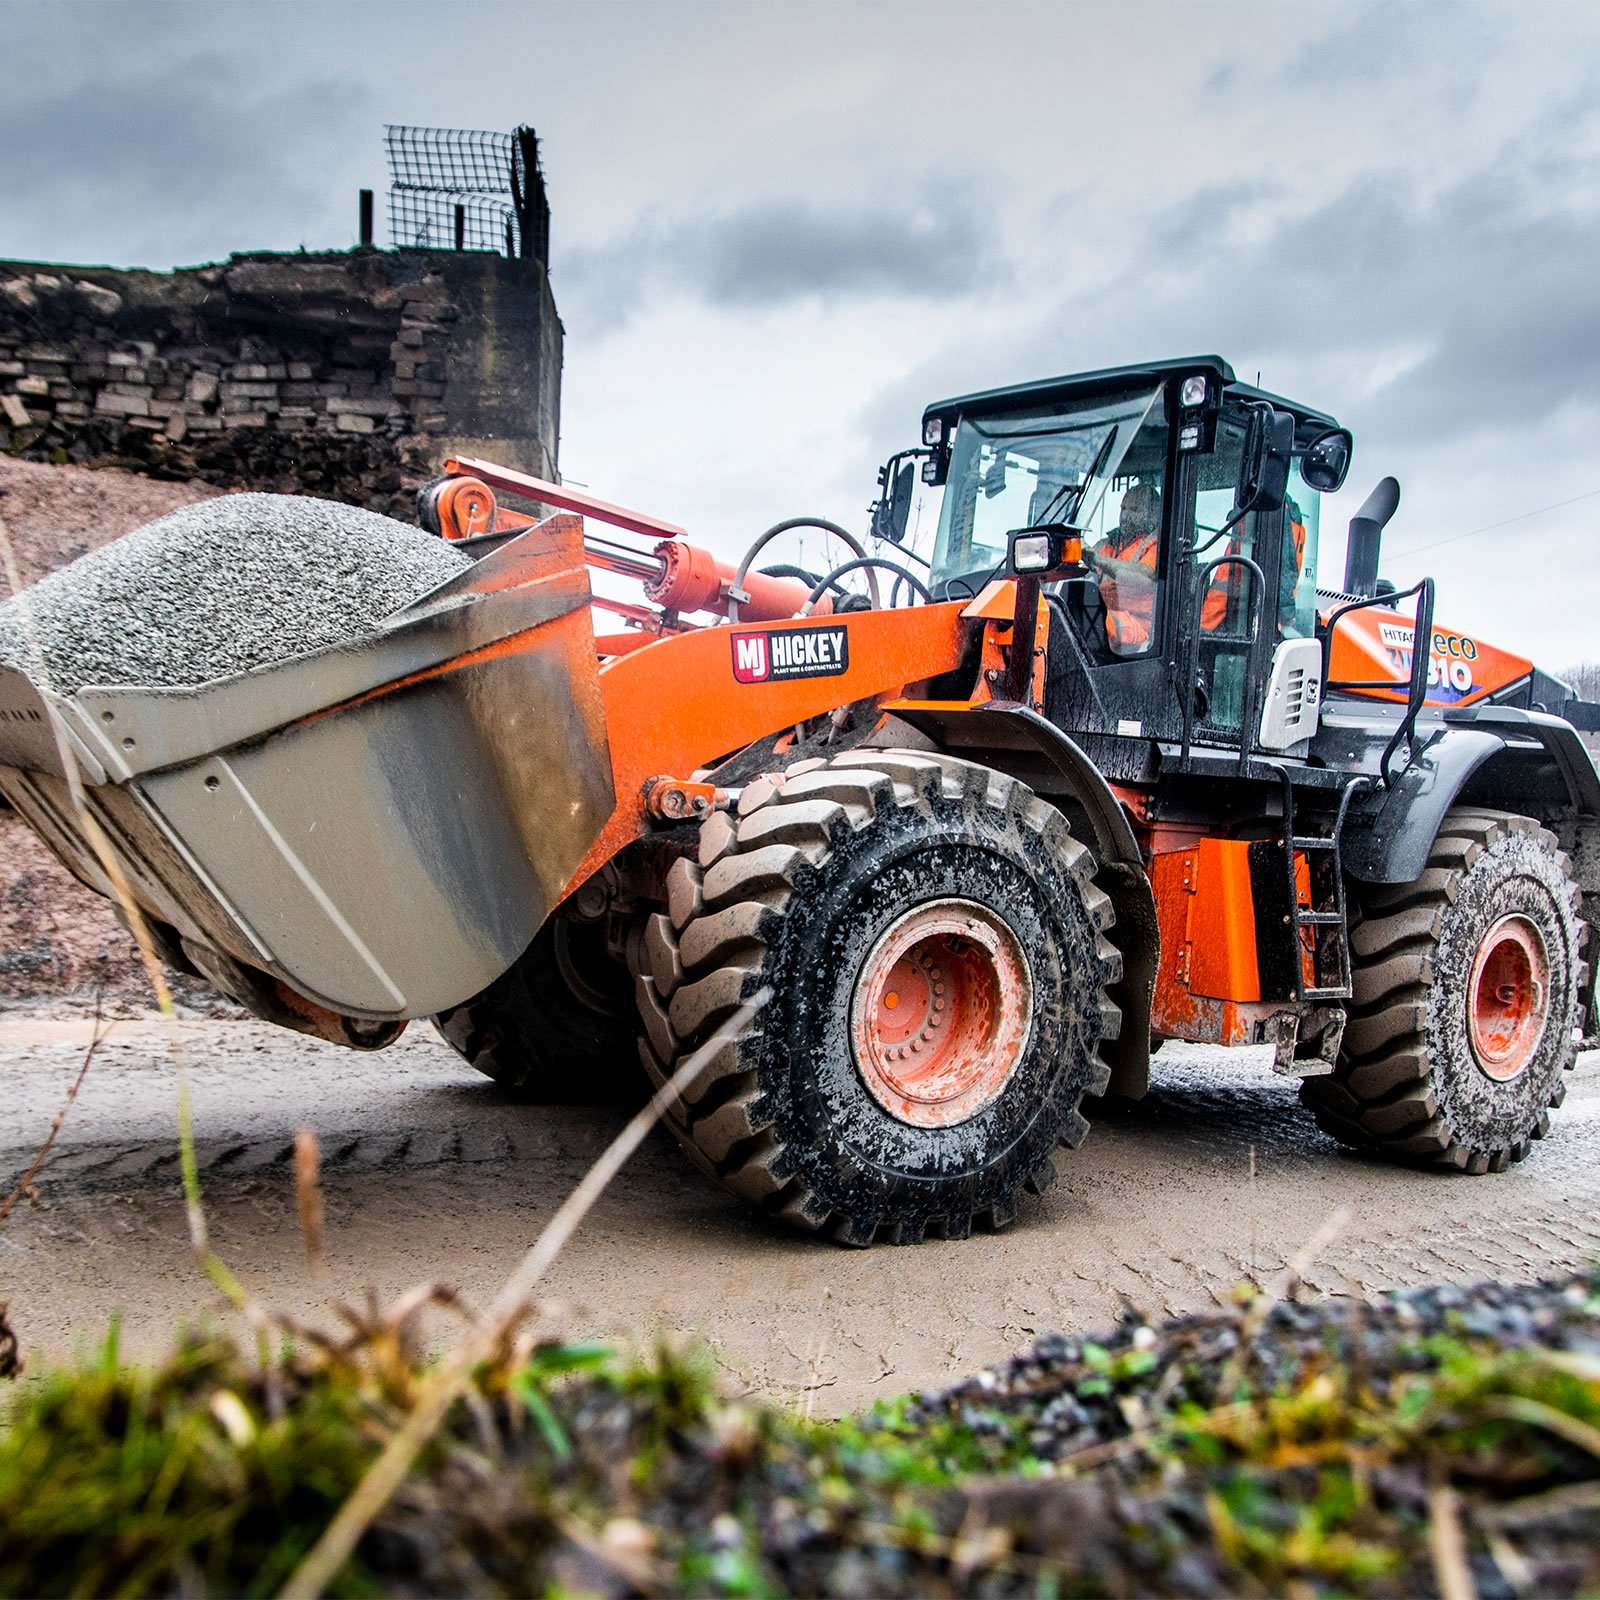 Hitachi ZW310-6 wheel loader on site at a quarry in the UK